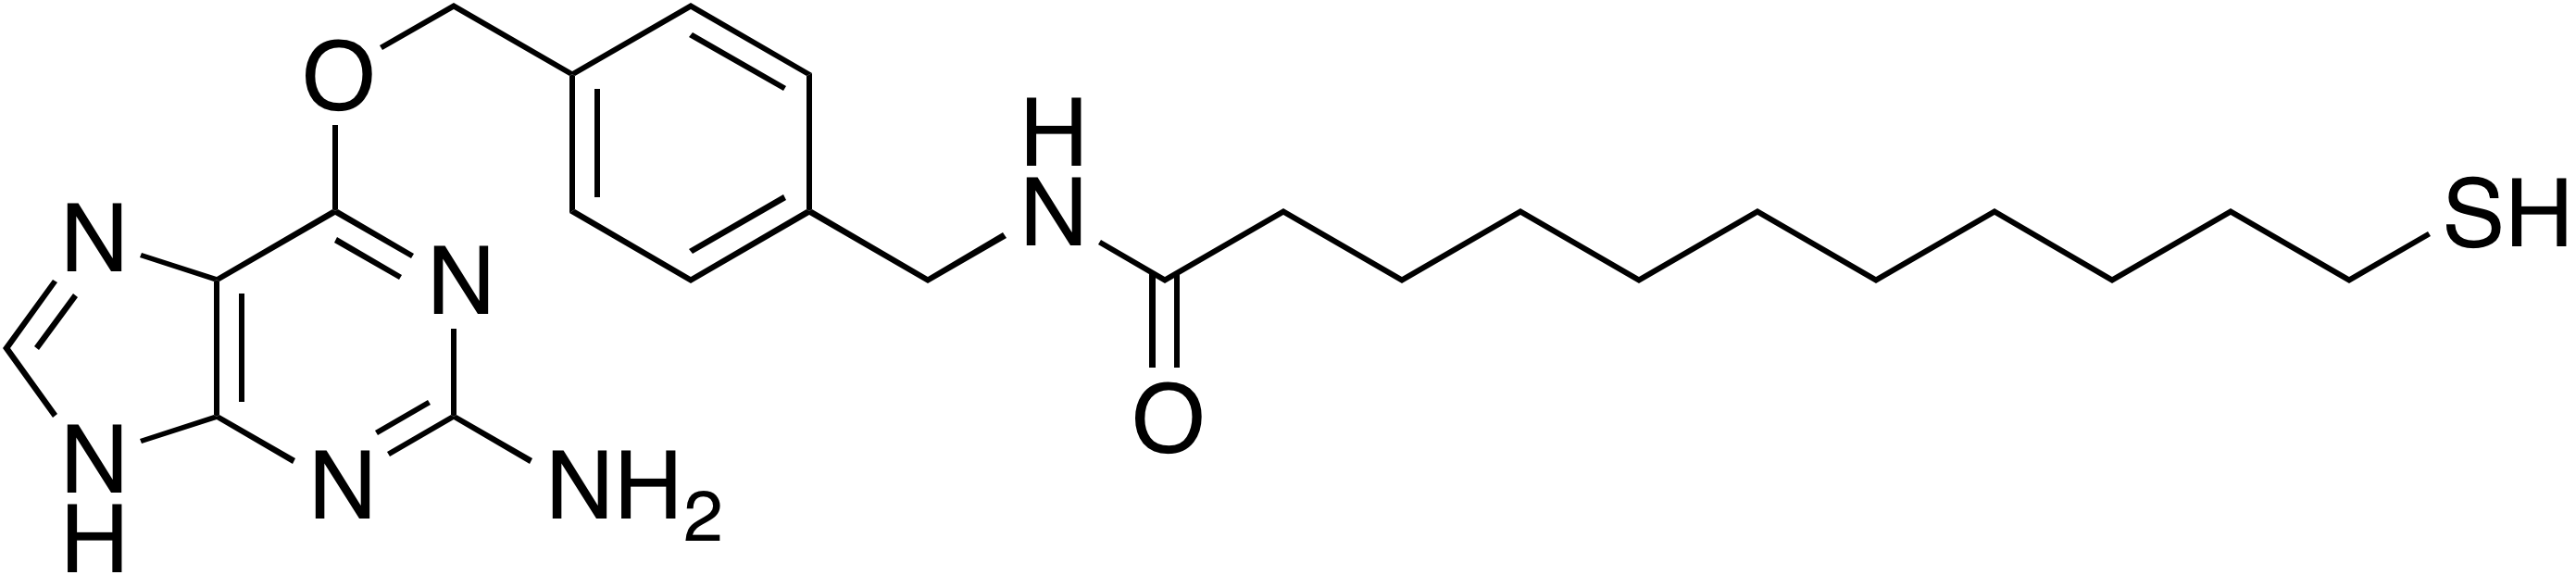 N-[4-(2-Amino-9H-purine-6-oxymethyl)benzyl]-11-mercaptoundecanamide